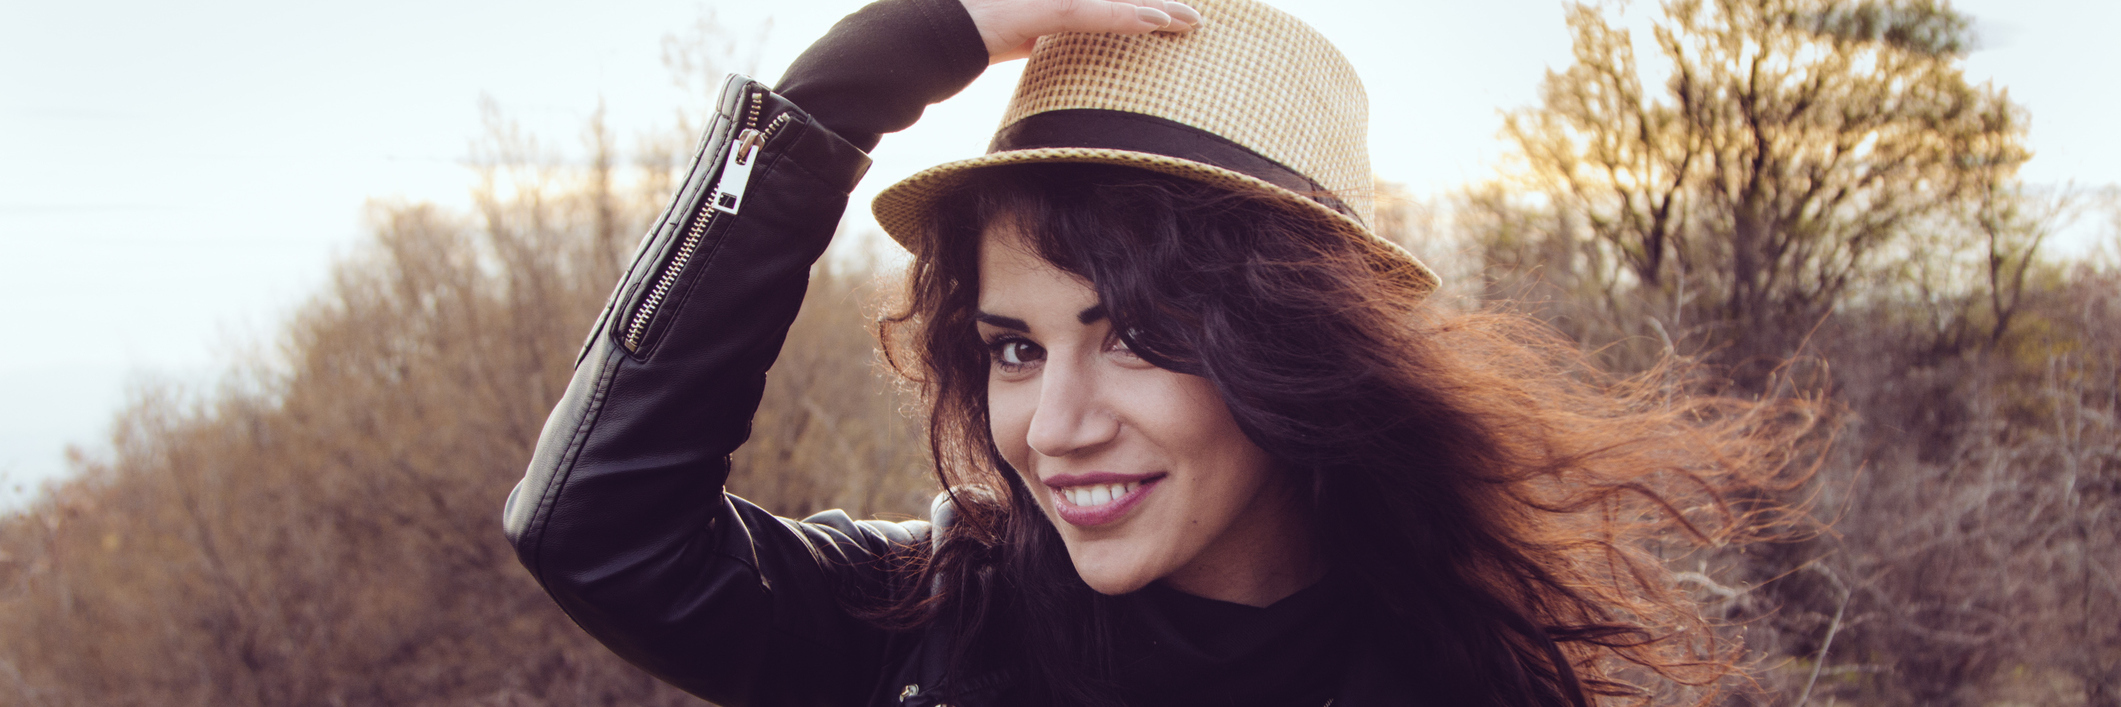 A brunette woman wearing a hat outdoors.